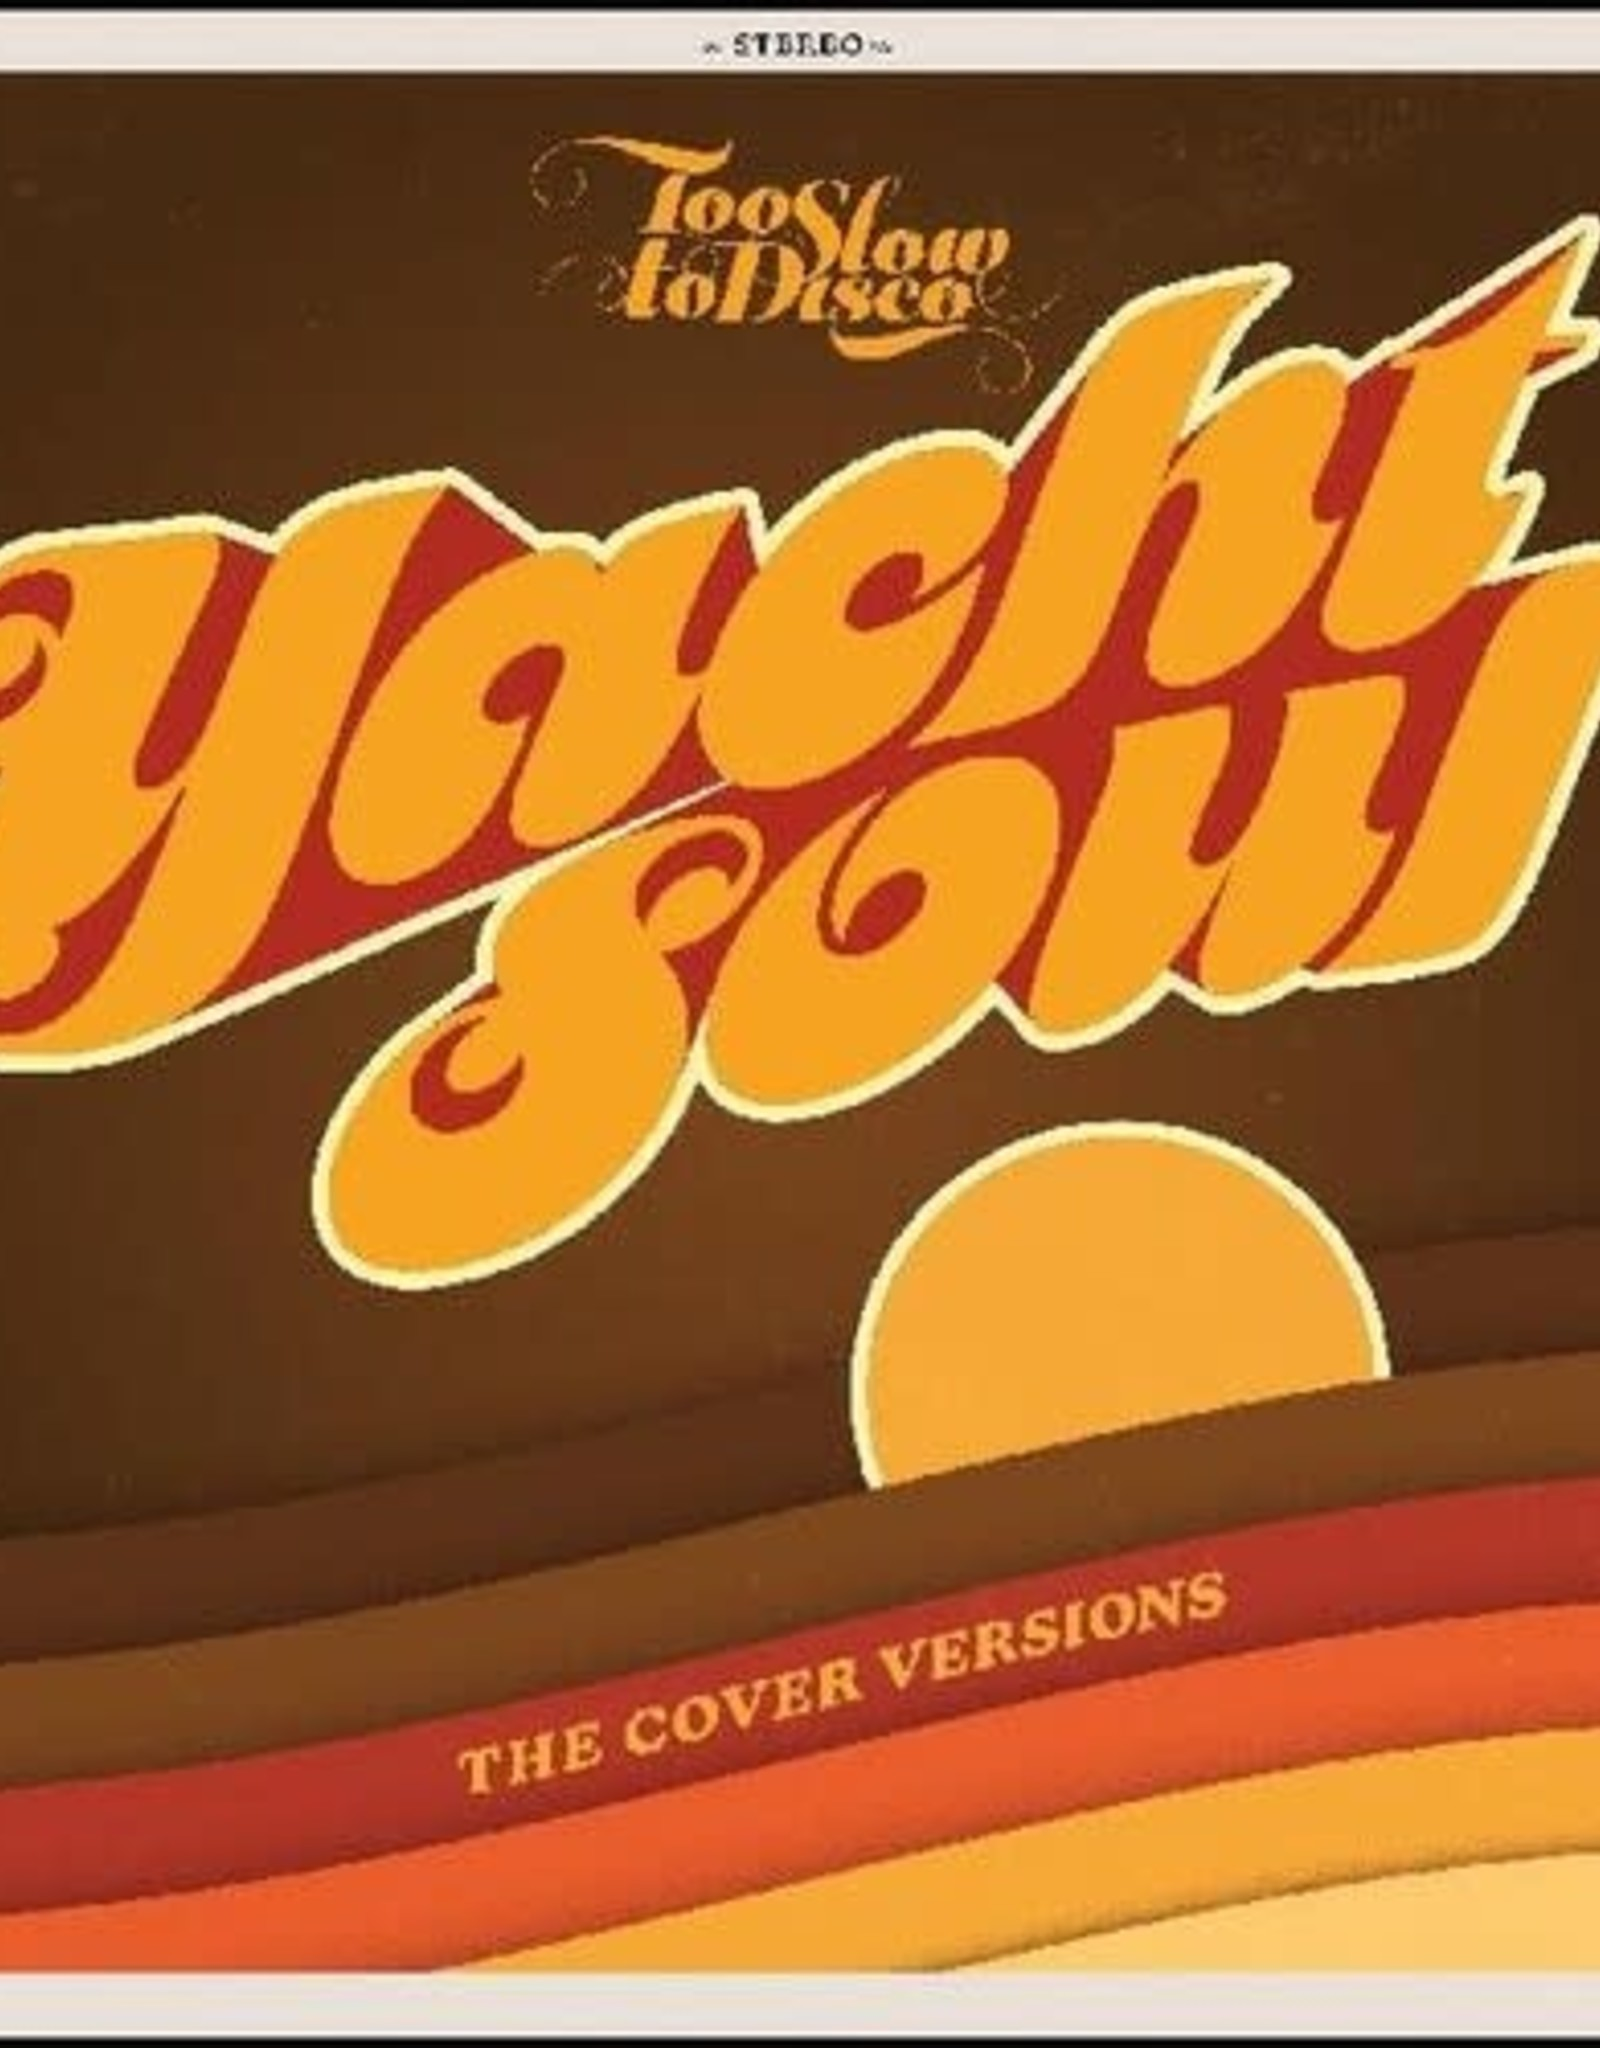 Too Slow To Disco Presents: Yacht Soul Covers (YELLOW/ORANGE VINYL, INDIE EXCLUSIVE)